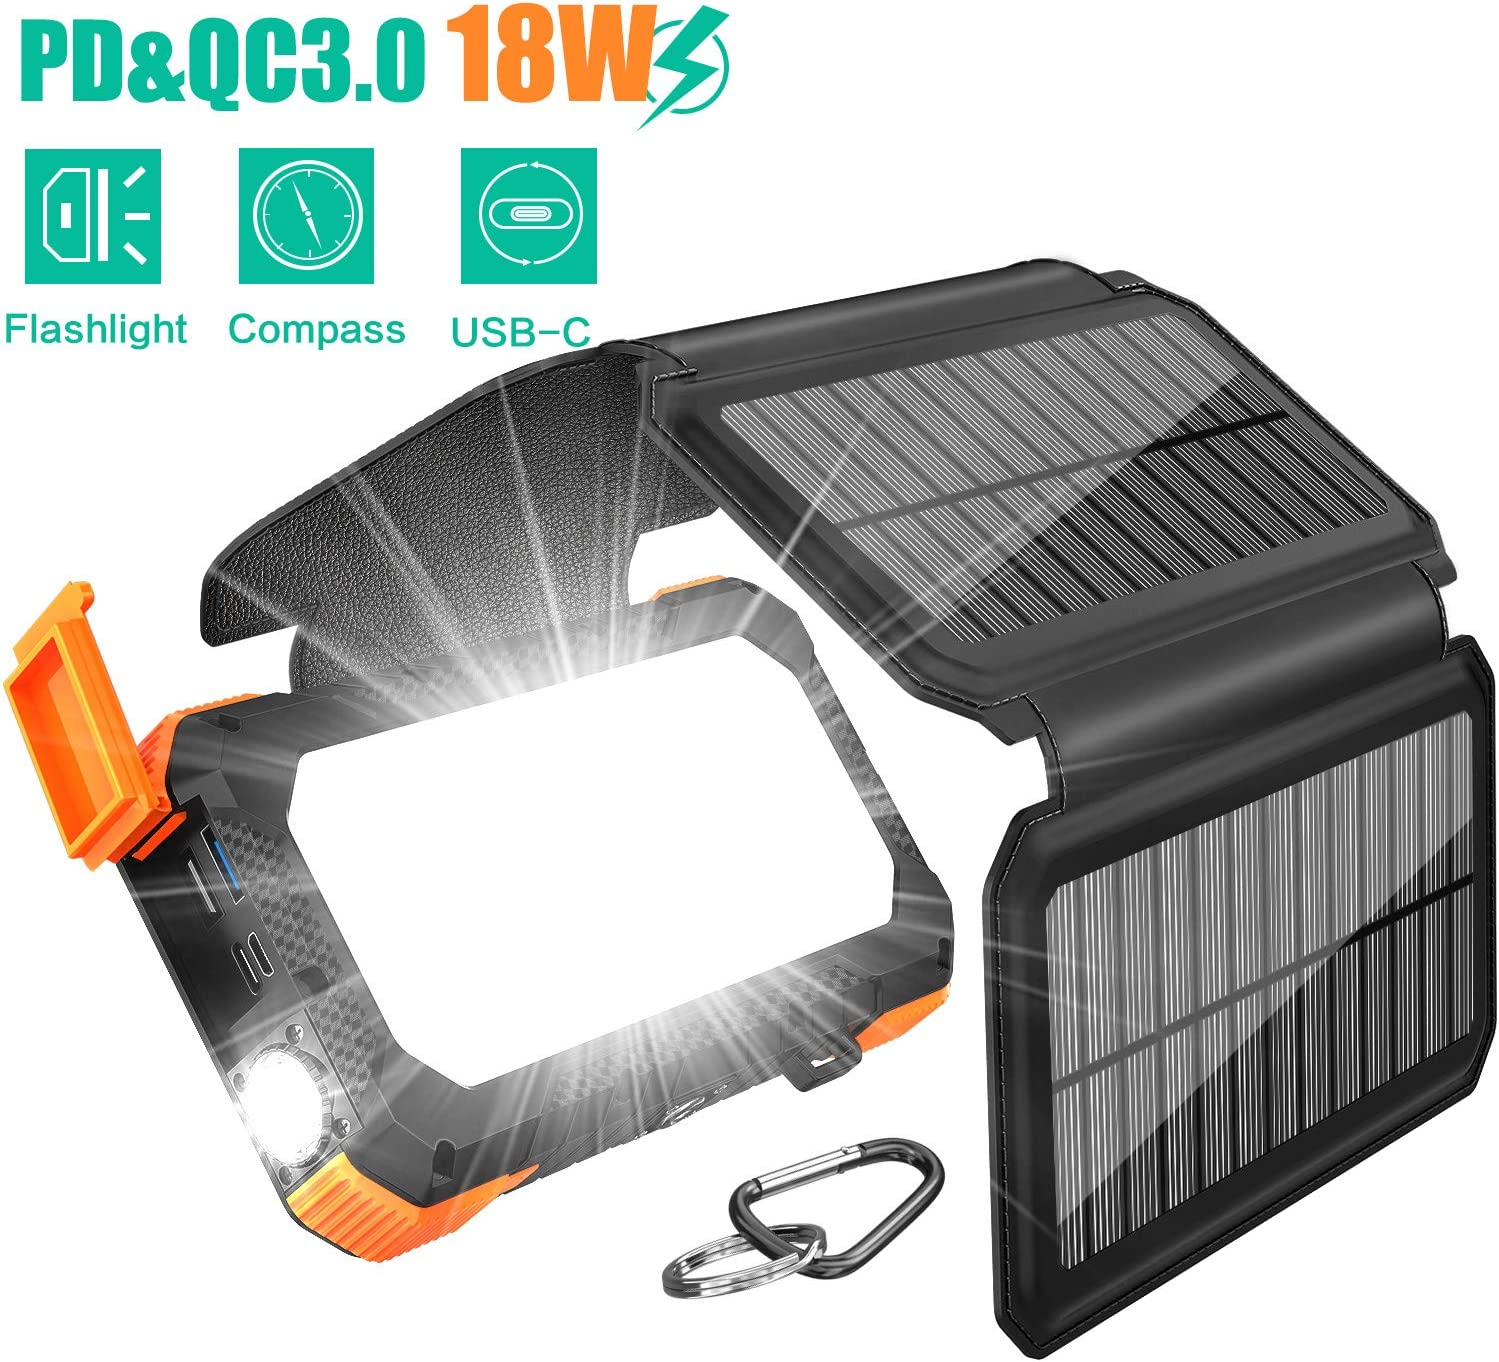 BLAVOR Solar Charger with Foldable Panels, Outdoor Power Bank 18W Fast Charging, 20,000mAh Solar Powered Charger with Camping Light/Flashlight/Compass Type C USB Charger 3 Outputs/Dual Inputs(Orange): Home Audio & Theater